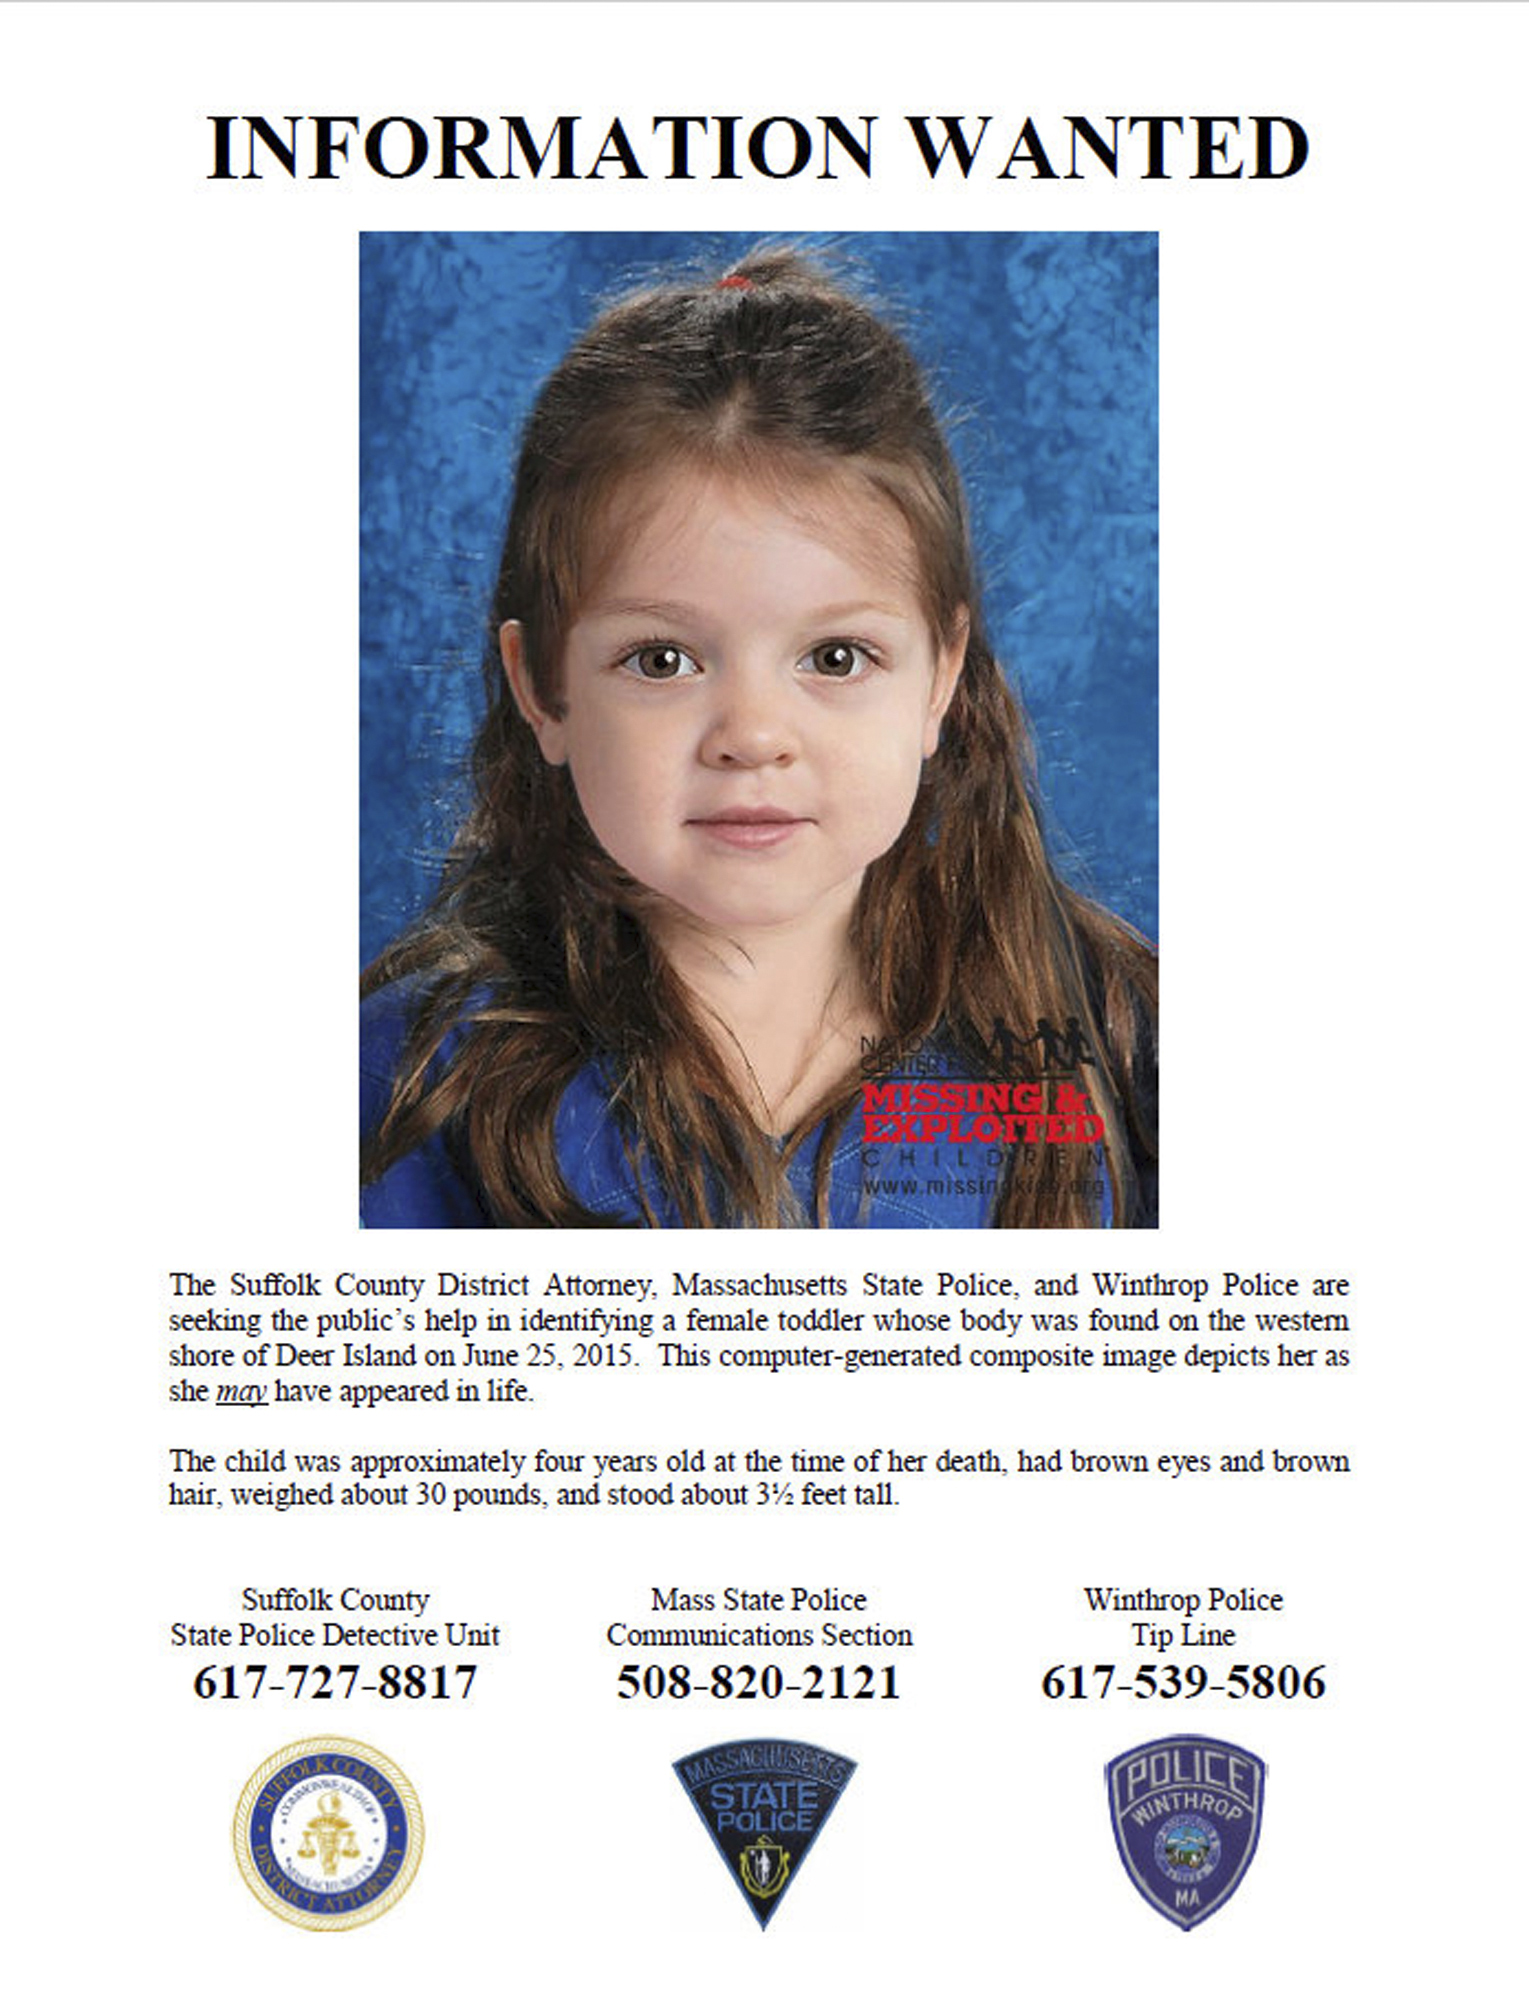 This flyer released on July 2, 2015, includes a computer-generated composite image depicting the possible likeness of a young girl, whose body was found on the shore of Deer Island in Boston Harbor on June 25, 2015.